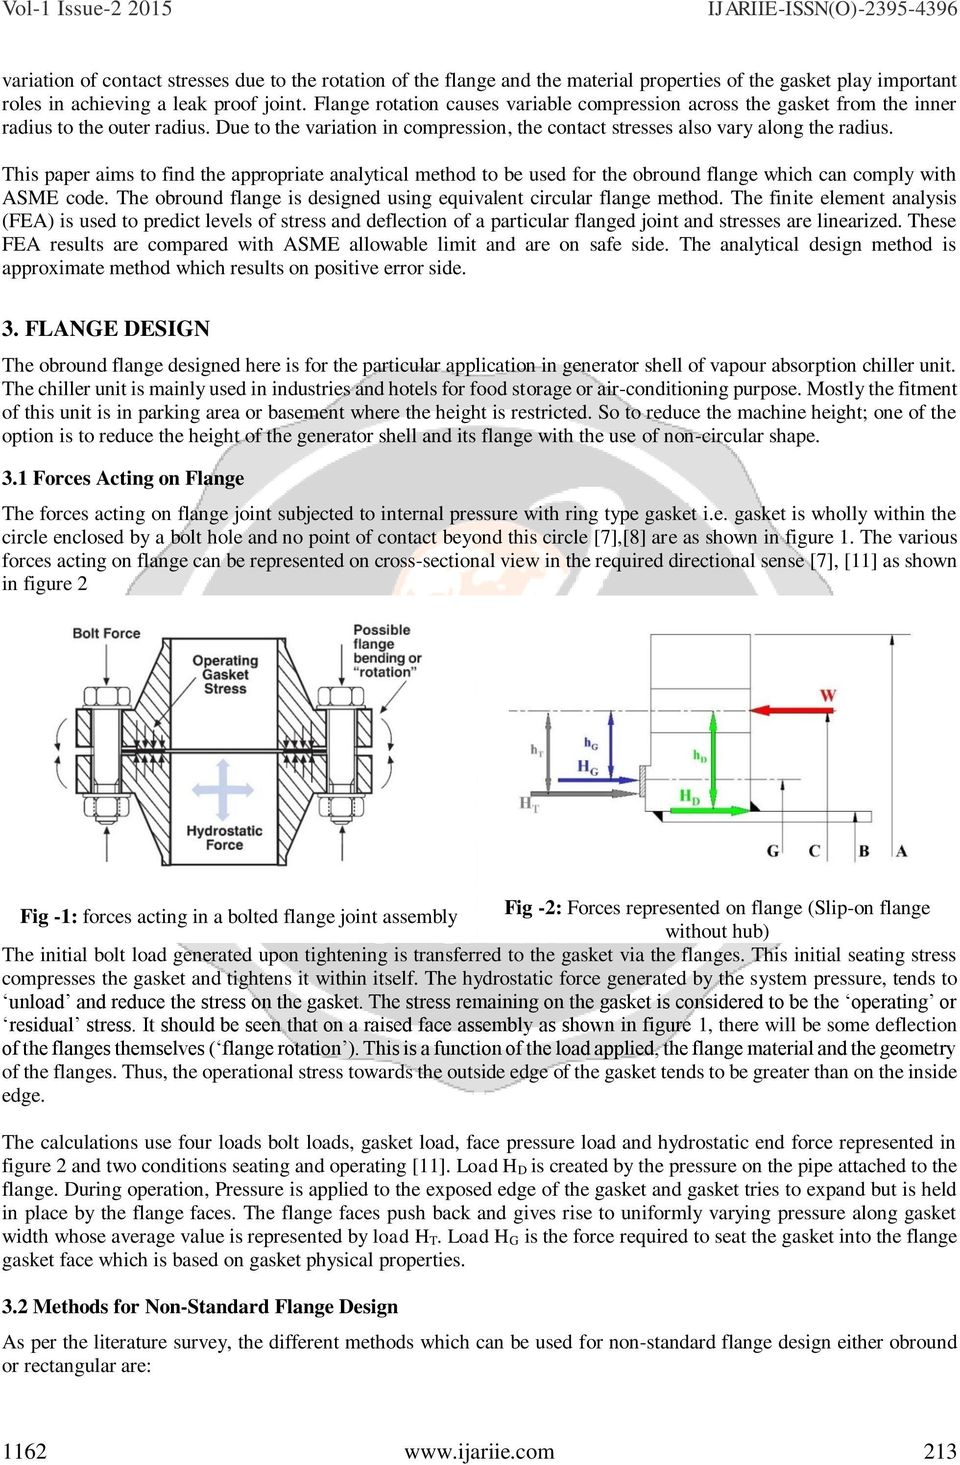 Design Of Obround Flange For Pressure Vessel Application By Thermax Wiring Diagram This Paper Aims To Find The Appropriate Analytical Method Be Used